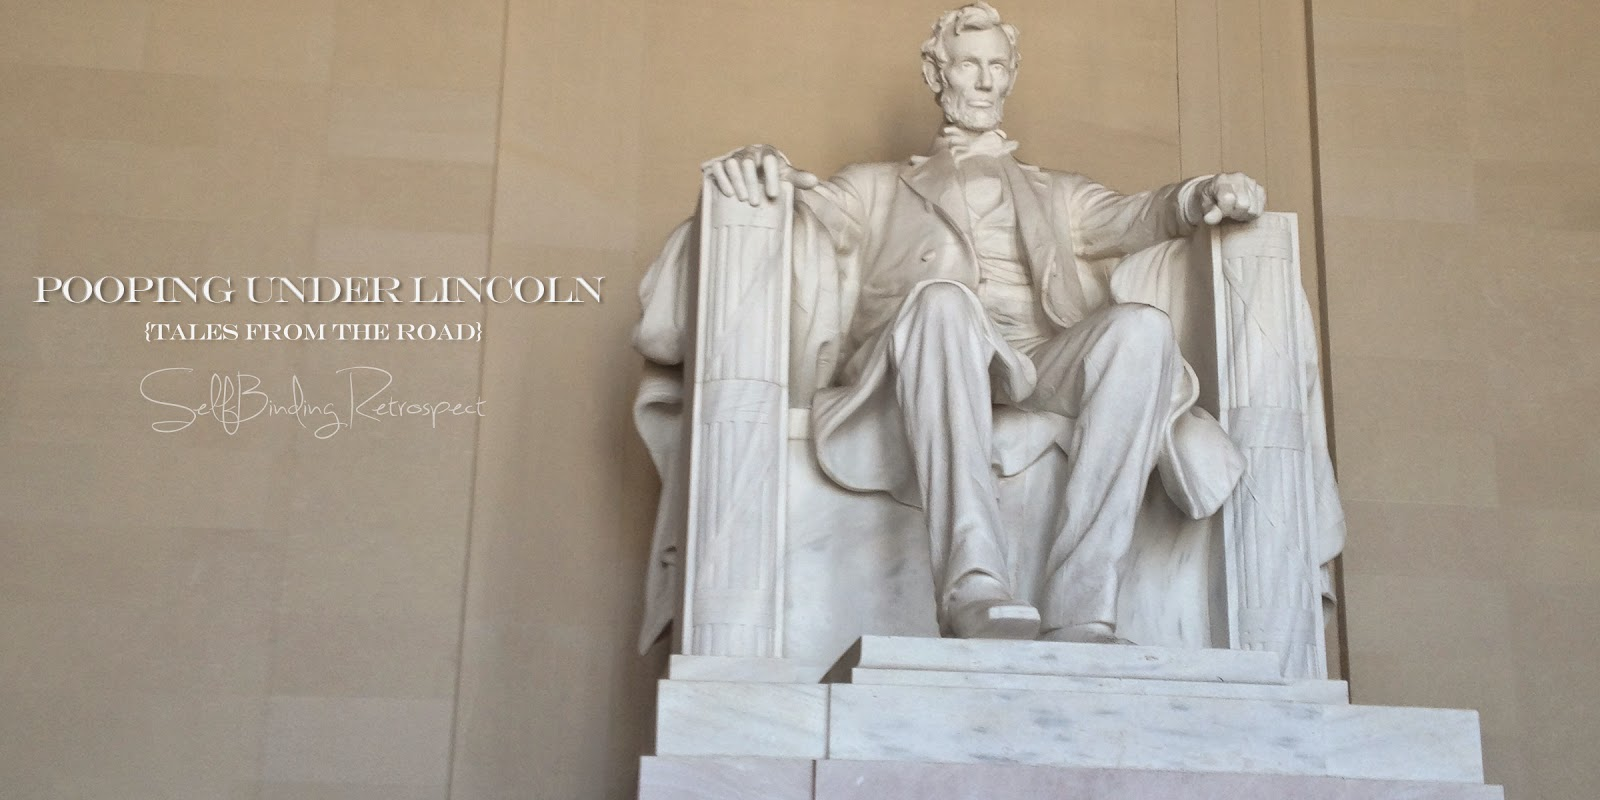 Pooping under Lincoln {tales from the road} SelfBinding Retrospect by Alanna Rusnak